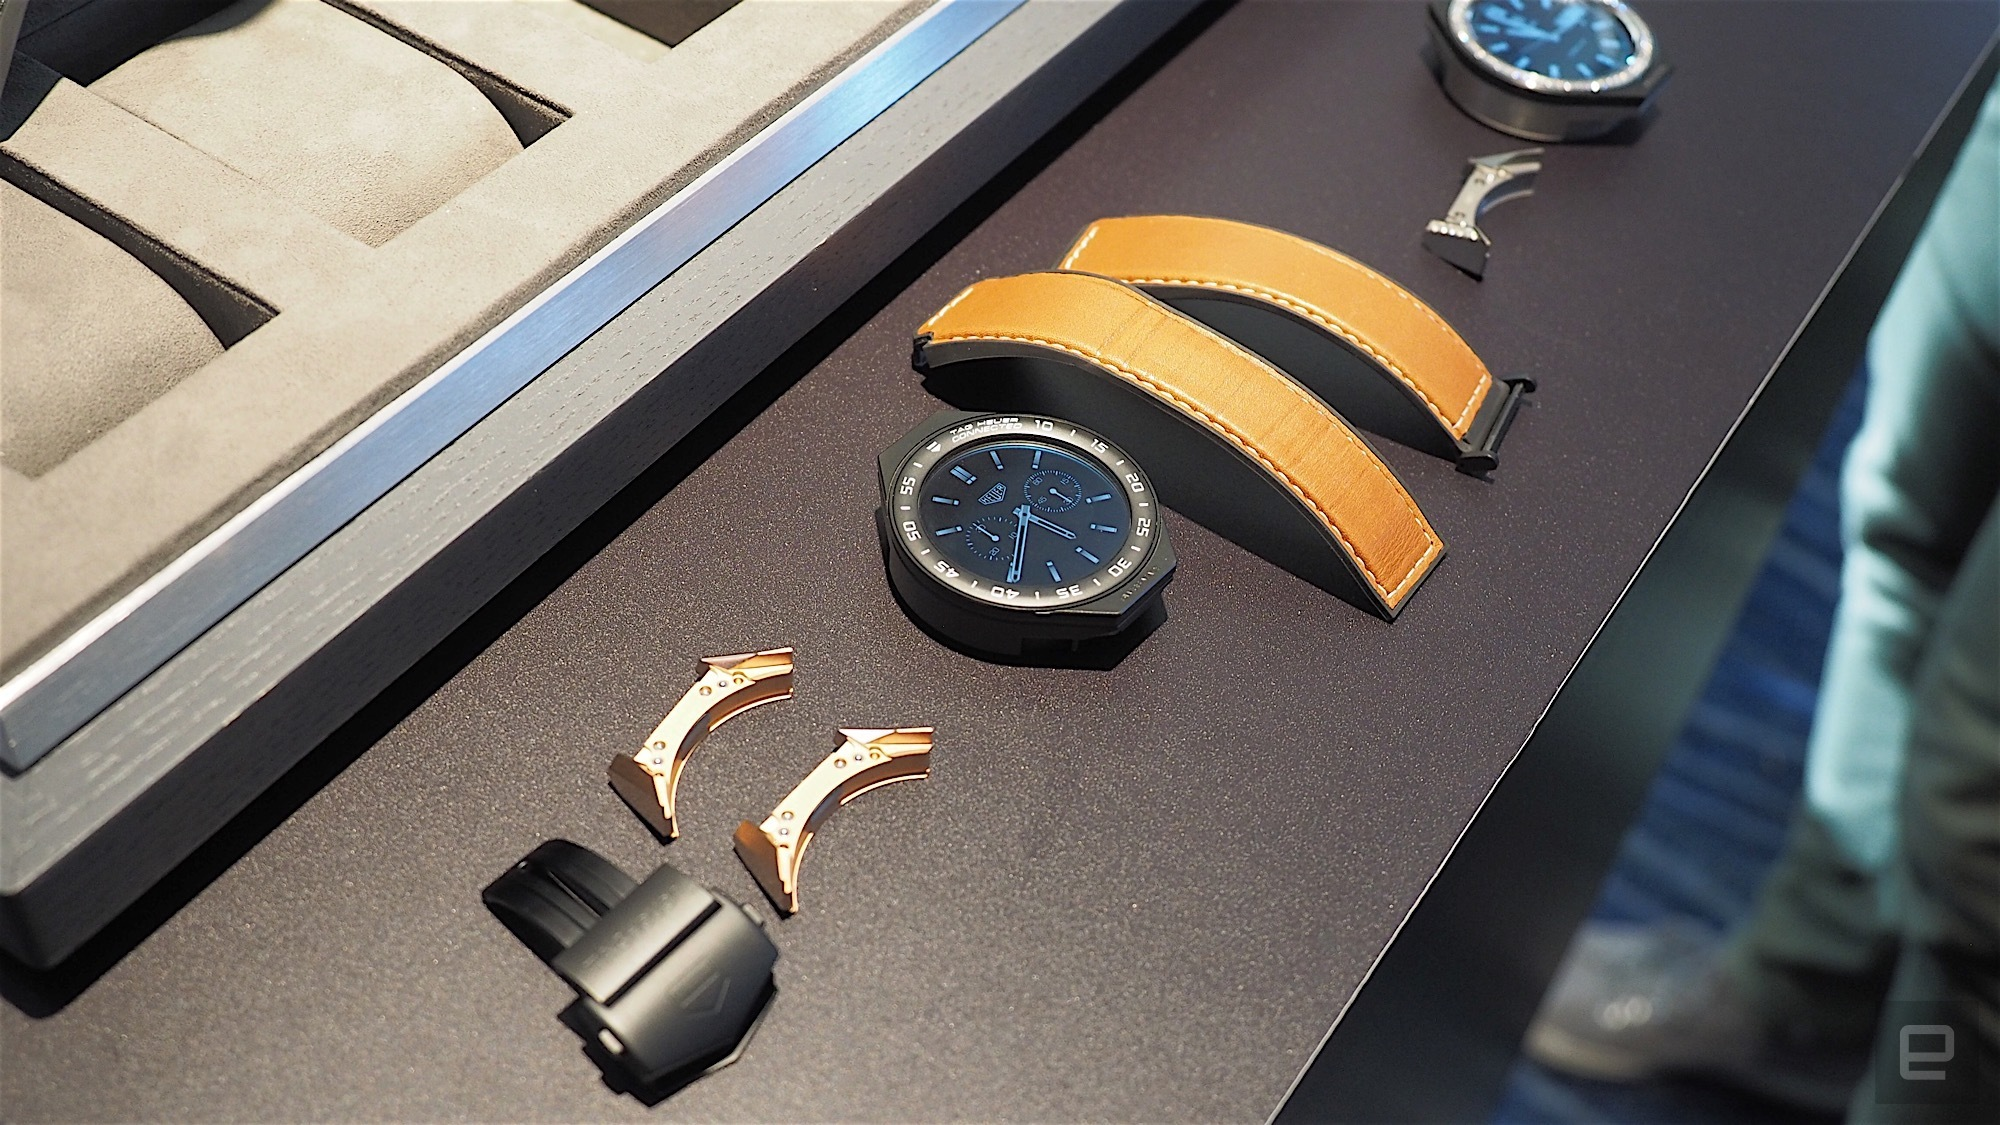 TAG Heuer Connected Modular 45: Design Modular with Android Wear 2.0 for 1,500 Euros